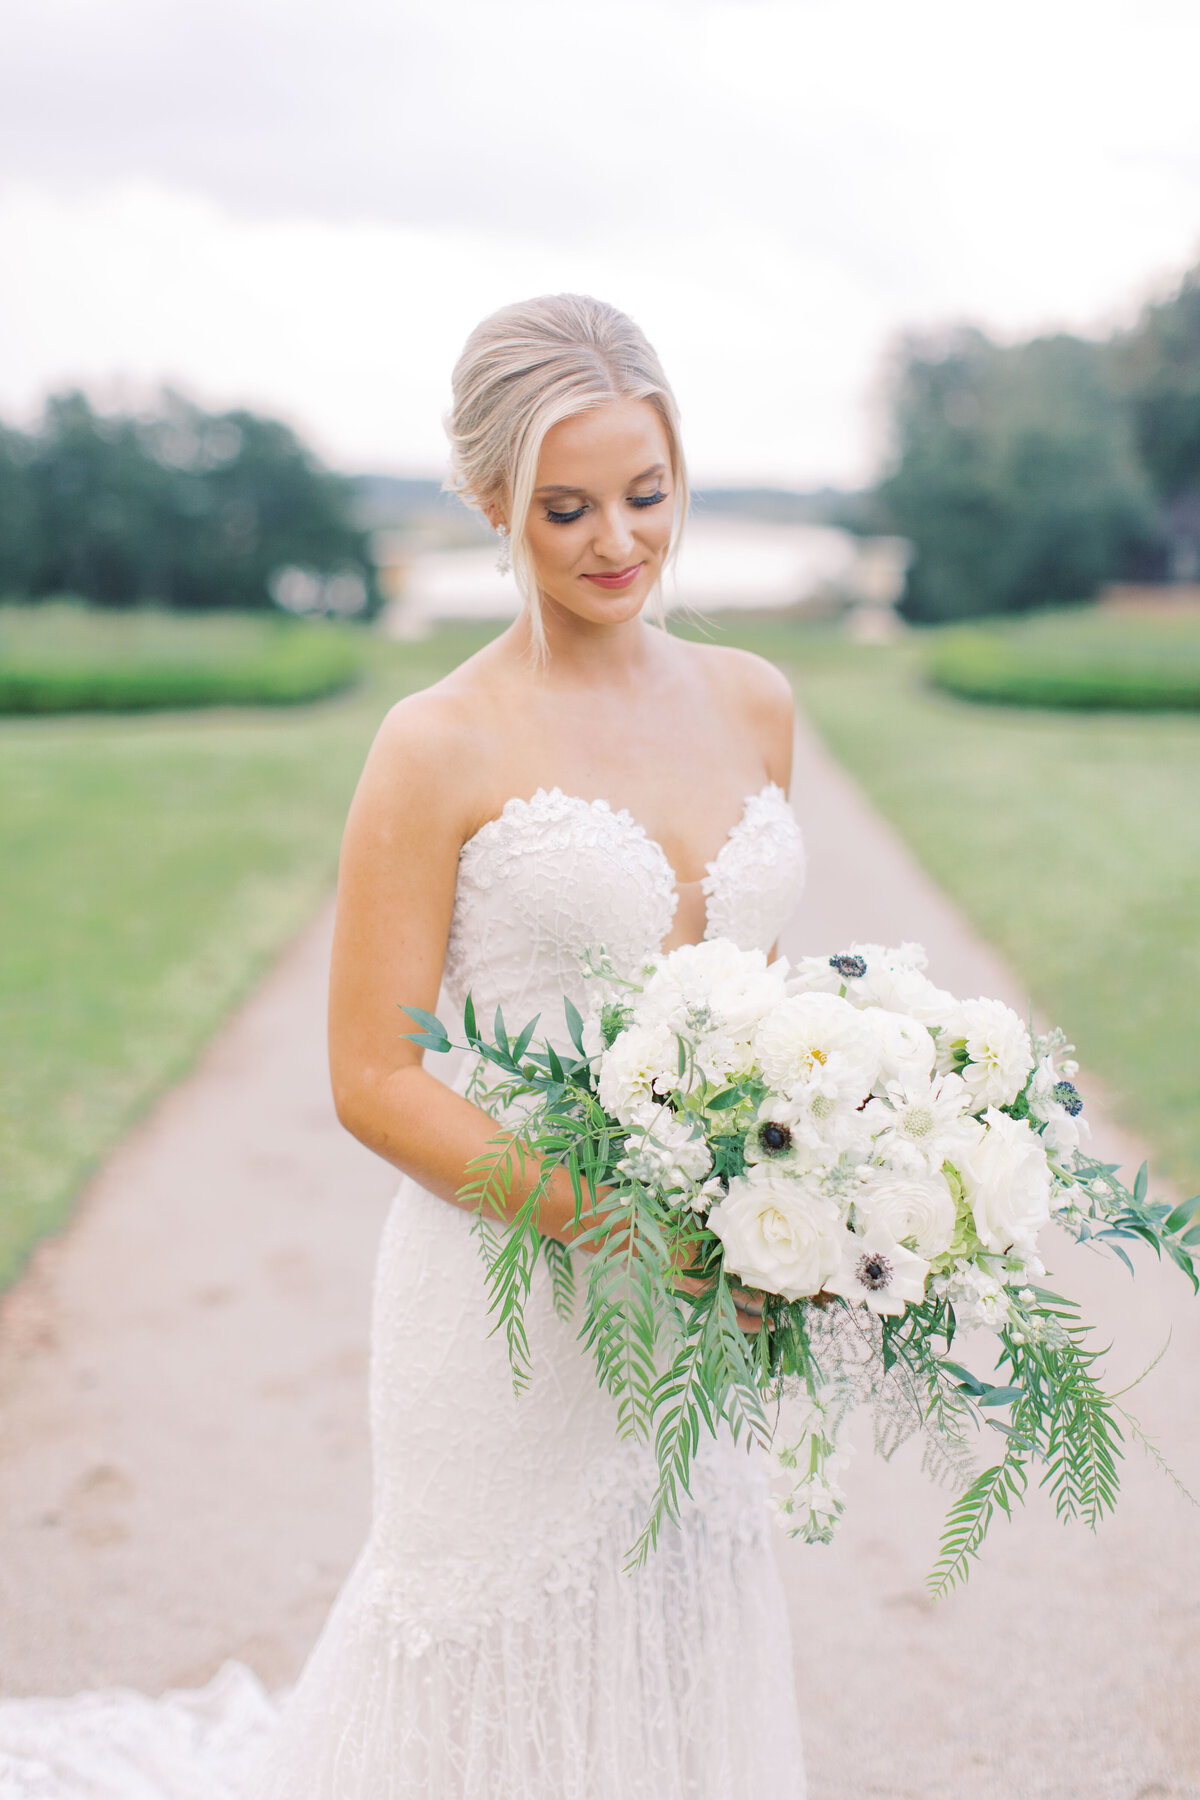 Melton_Wedding__Middleton_Place_Plantation_Charleston_South_Carolina_Jacksonville_Florida_Devon_Donnahoo_Photography__0302